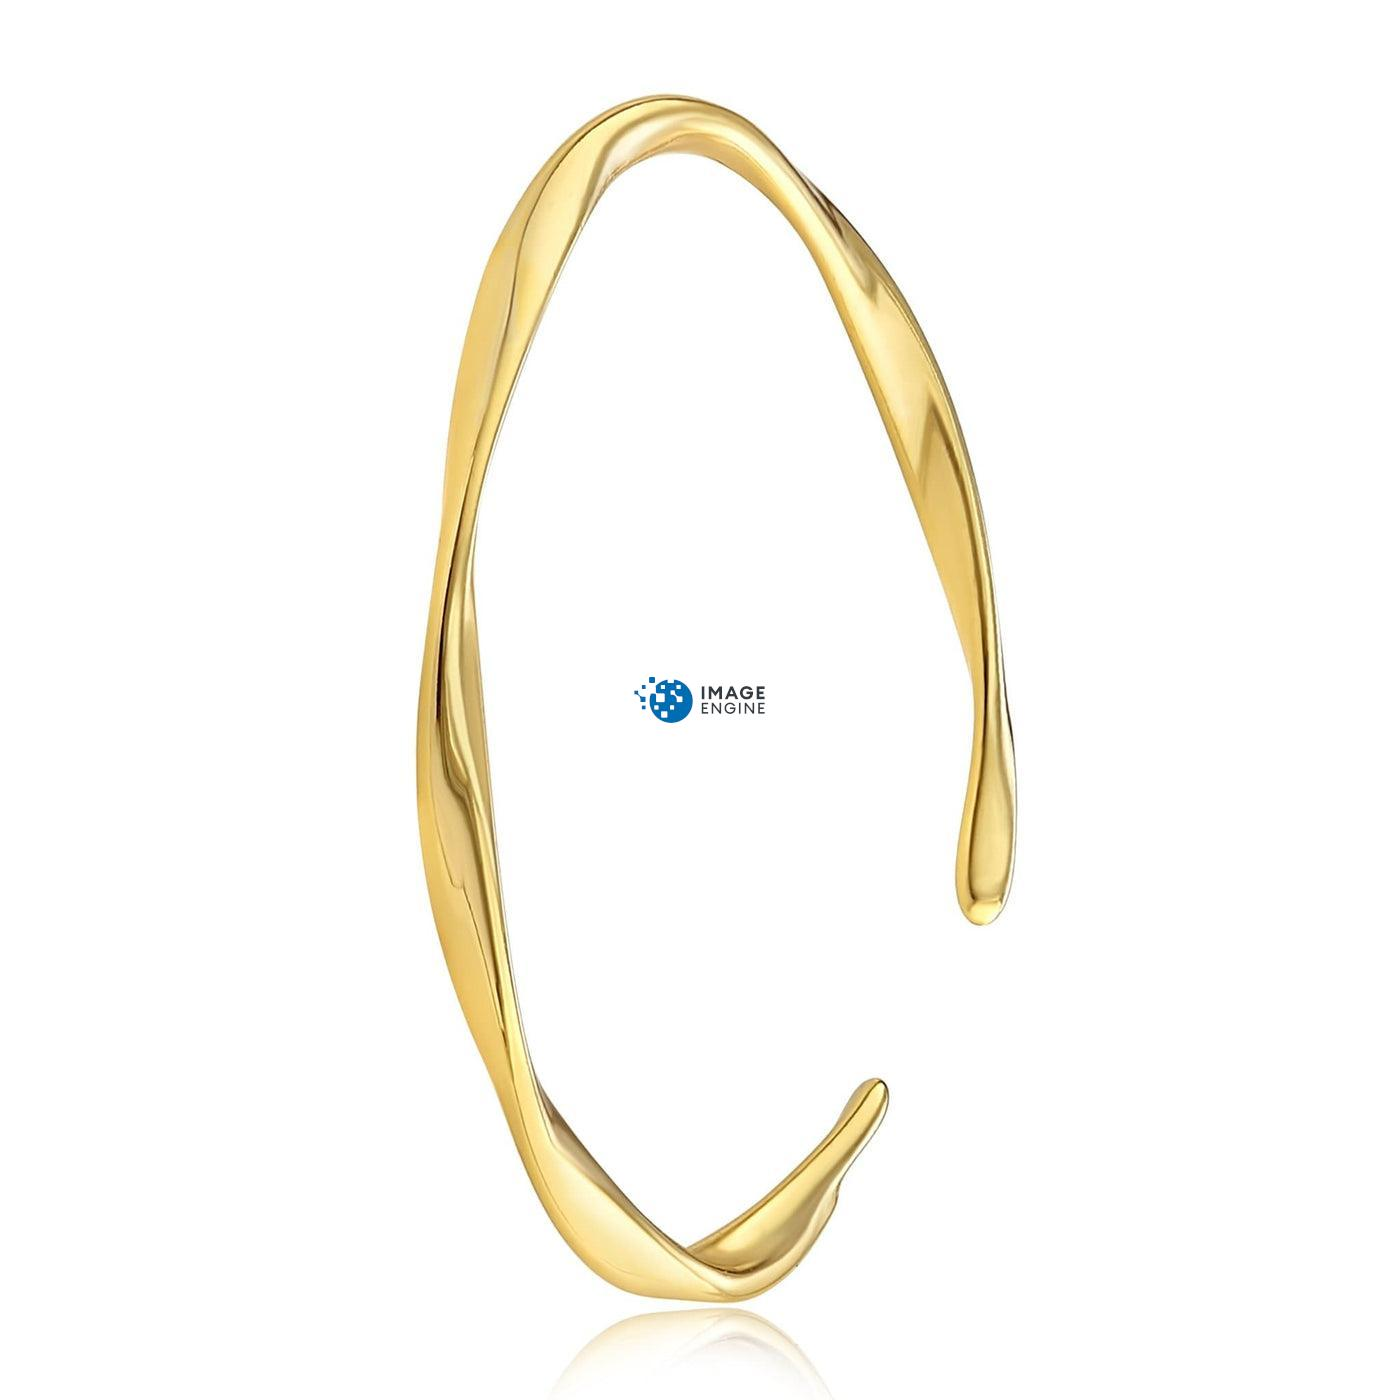 Olivia Twist Ring - Side View - 18K Yellow Gold Vermeil